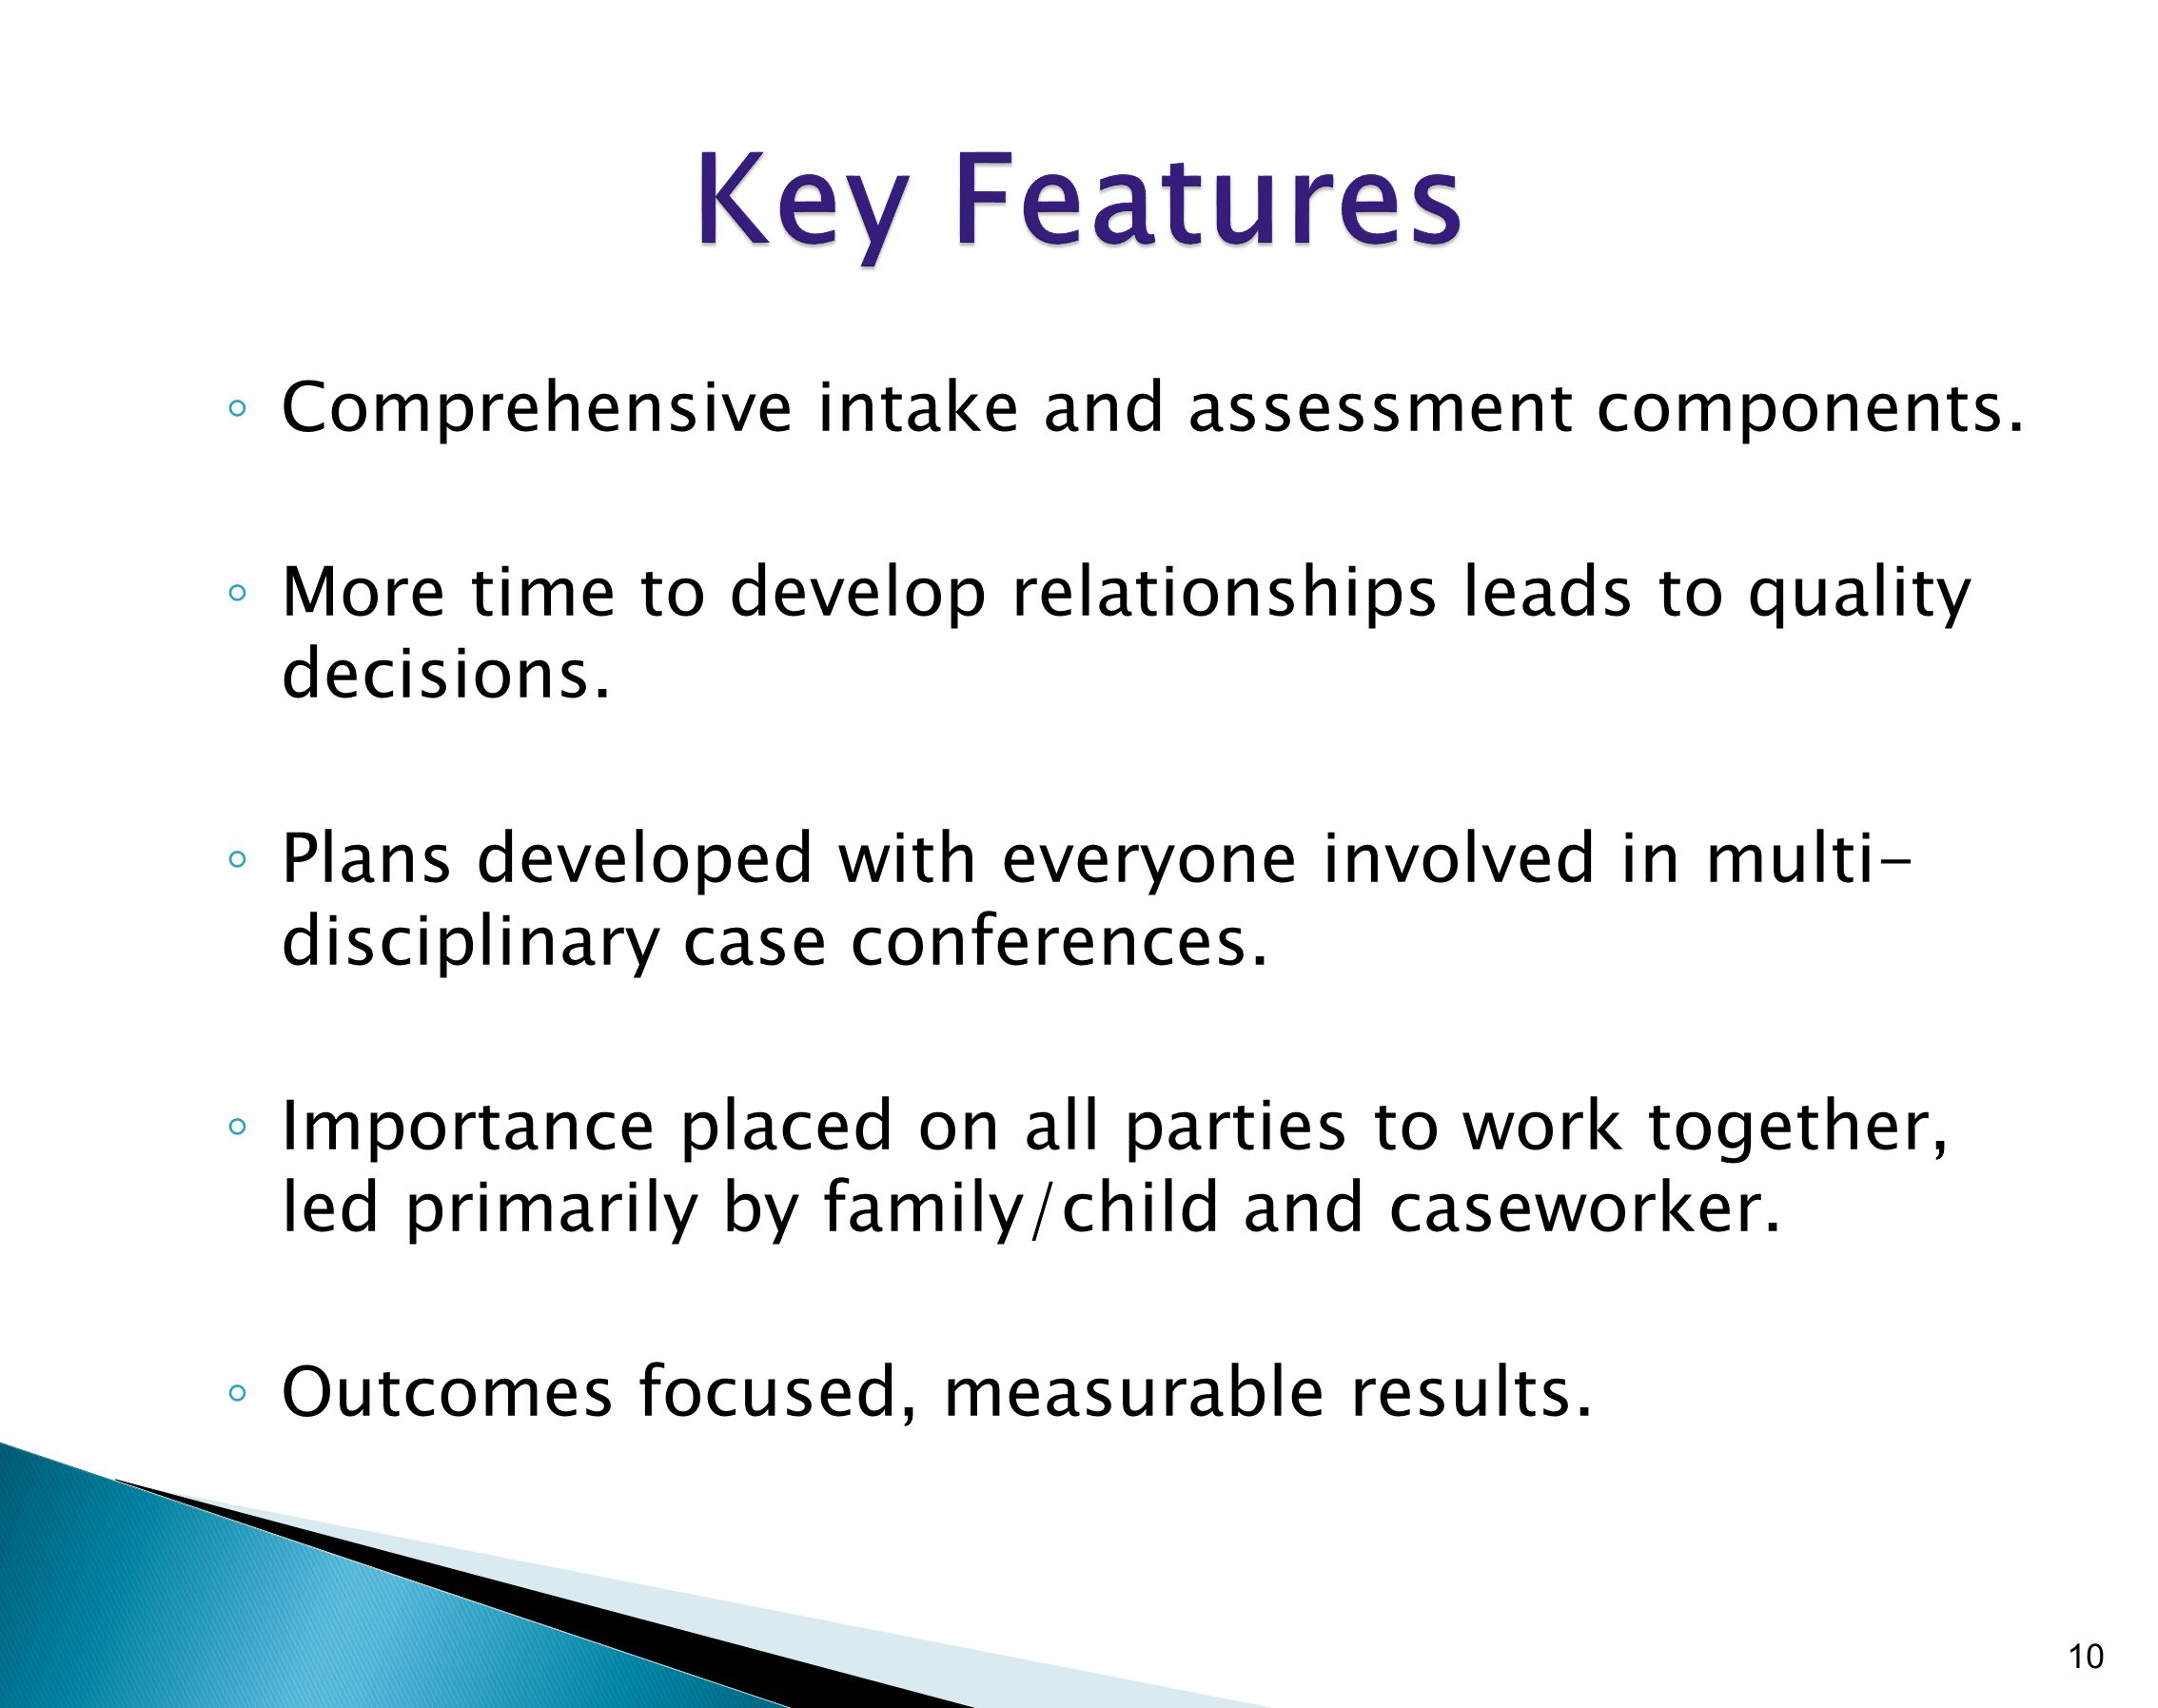 ◦ Comprehensive intake and assessment components.